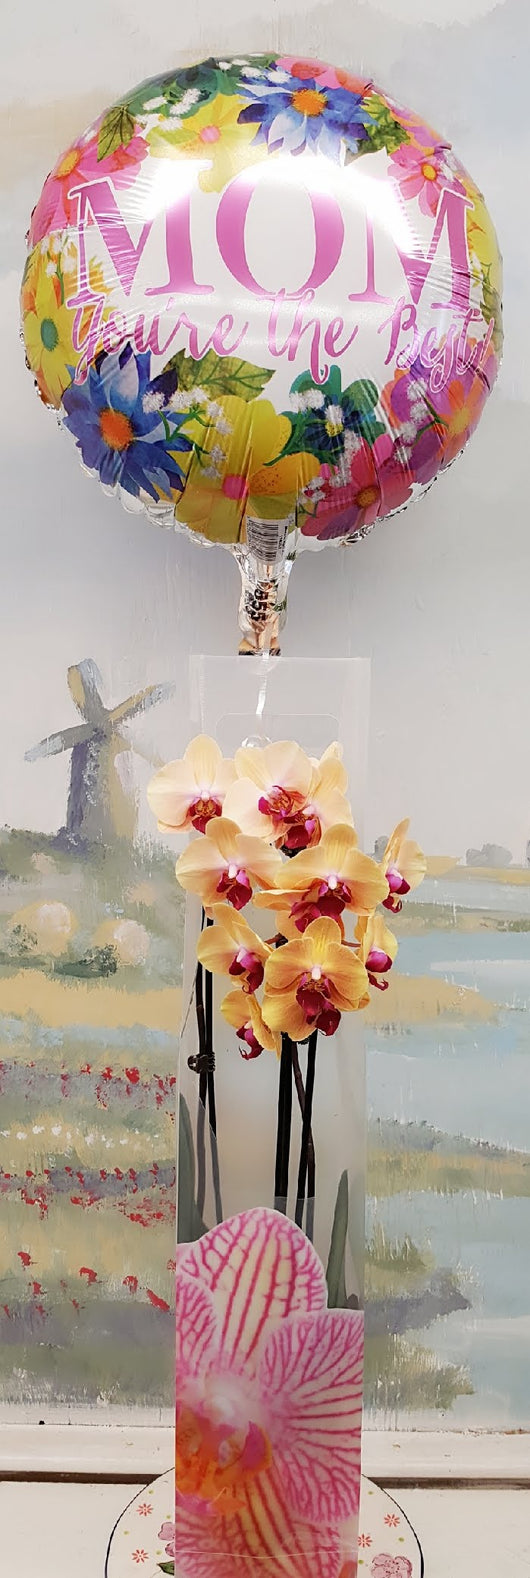 2019 Mother's Day Luxury 2 Stem Orchid & Balloon